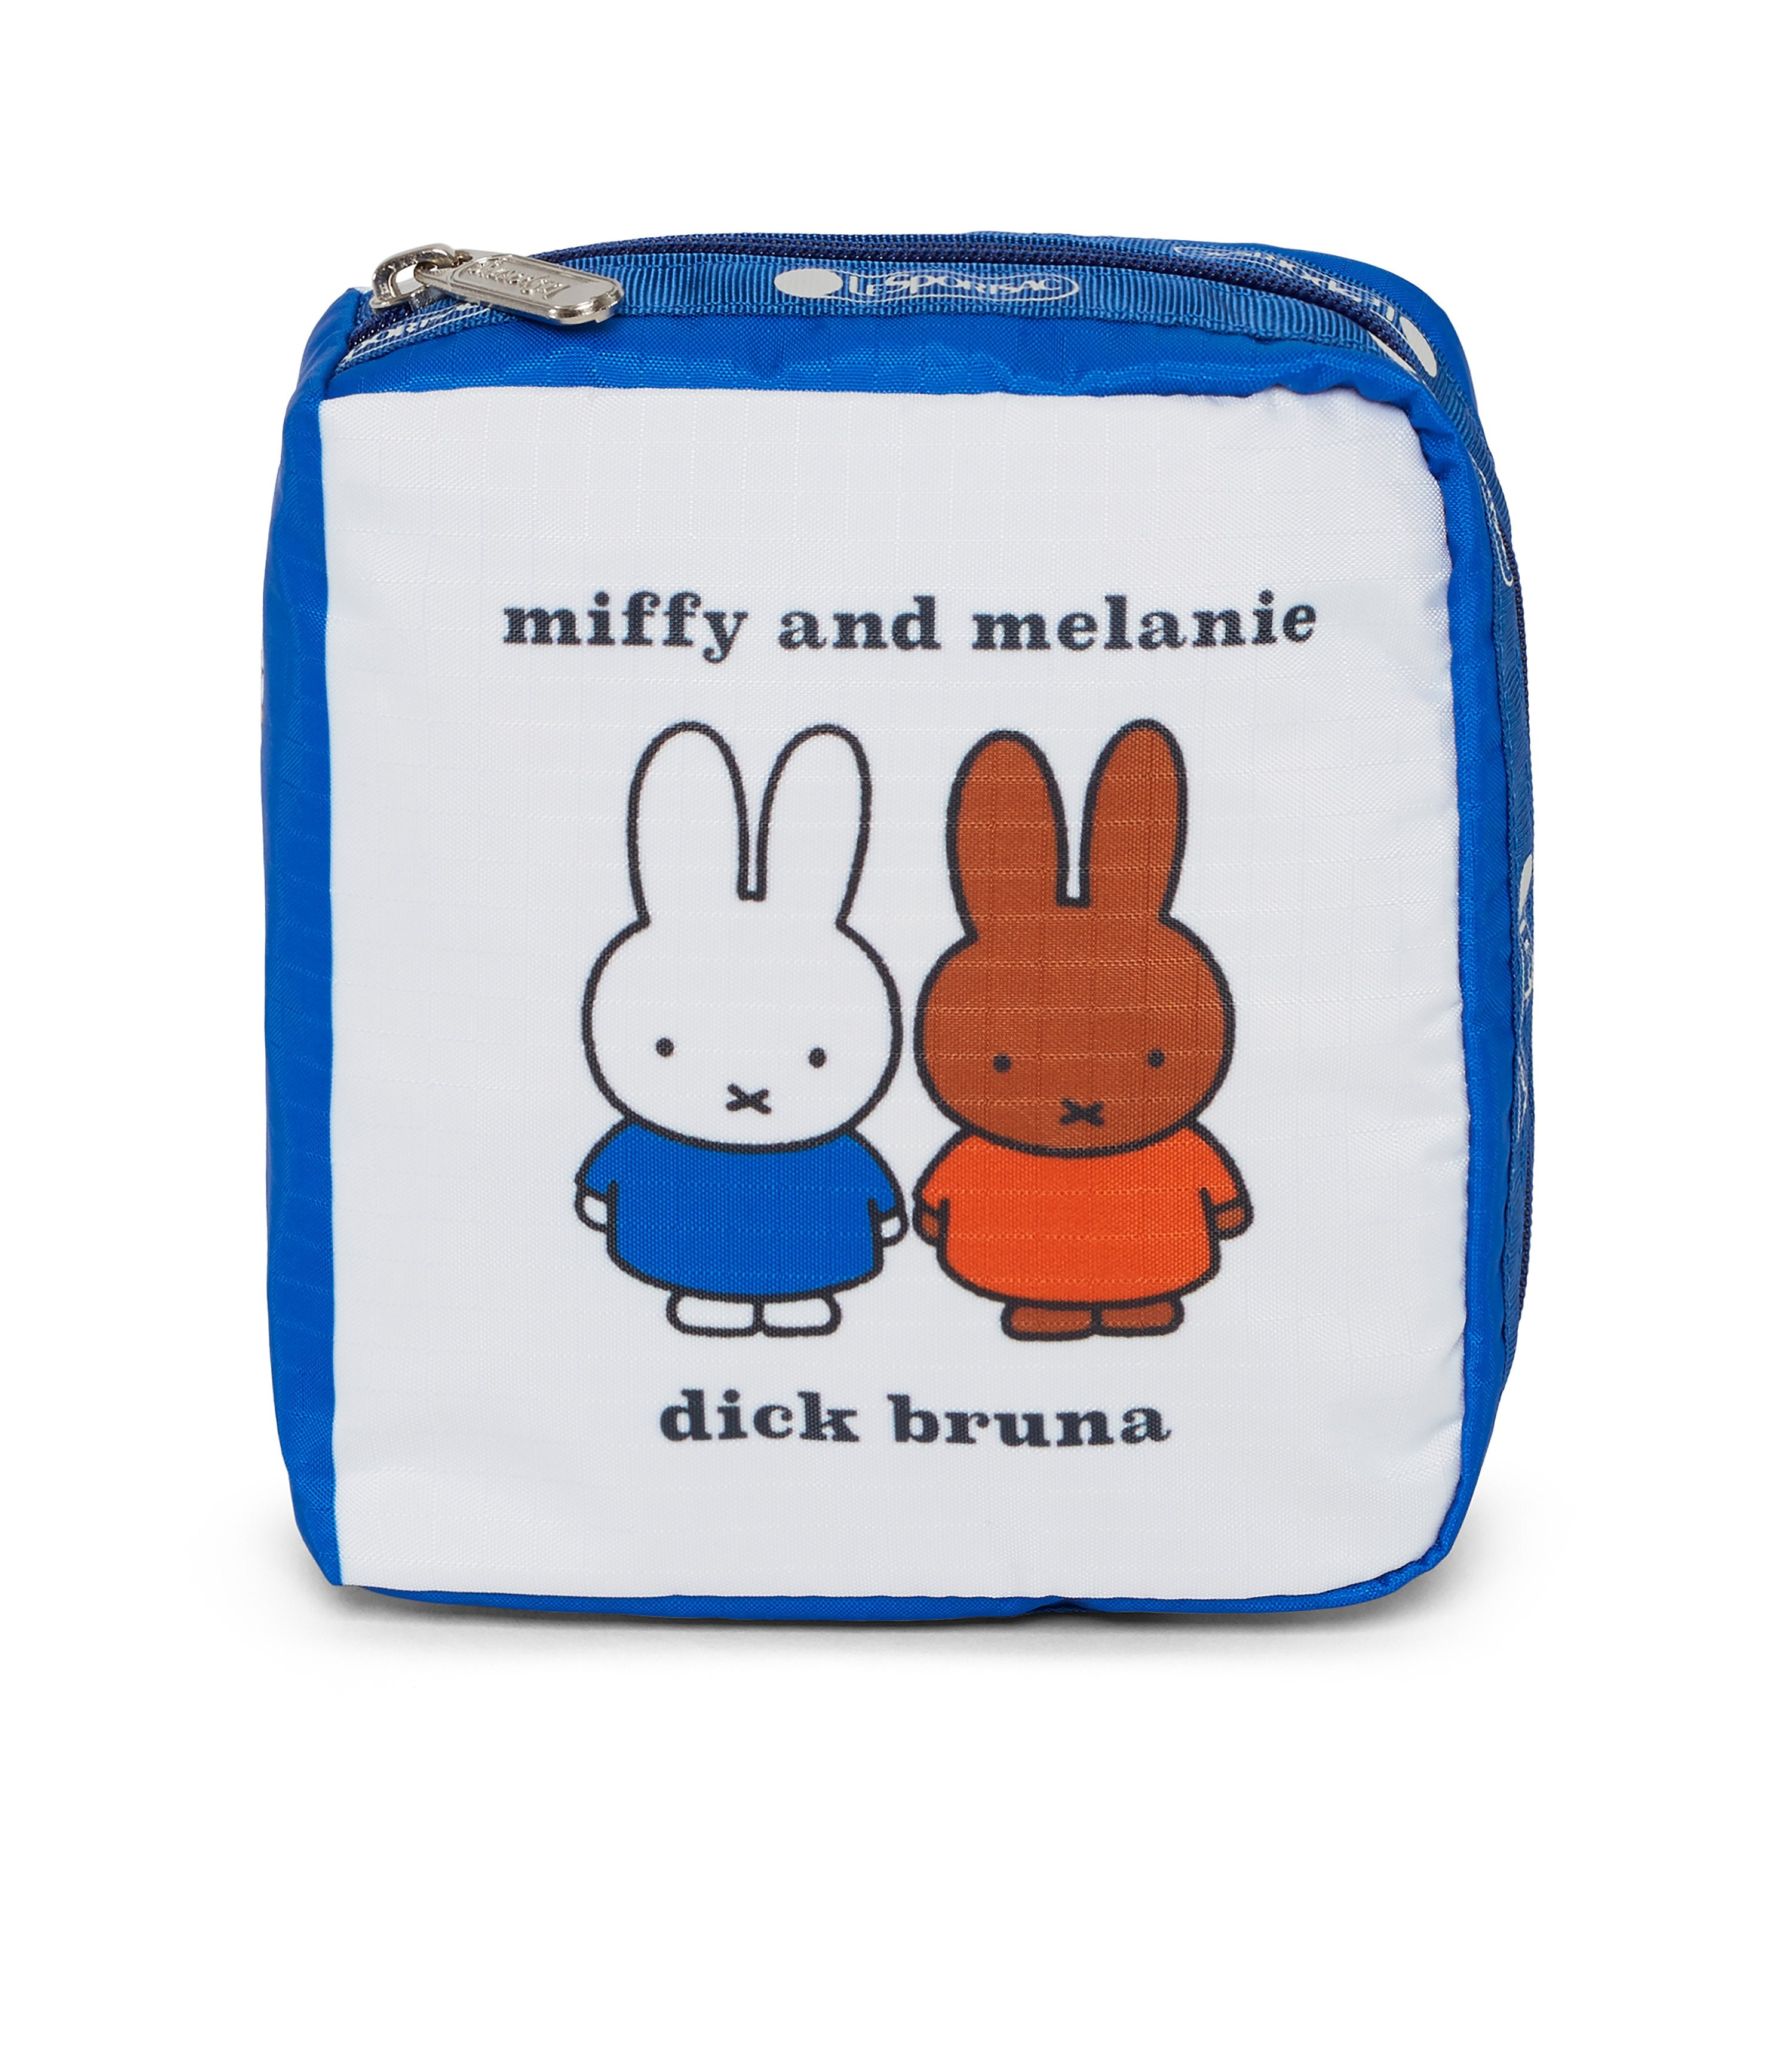 Dick Bruna - LeSportsac Book Pouch - Accessory - Miffy and Melanie -  Front View